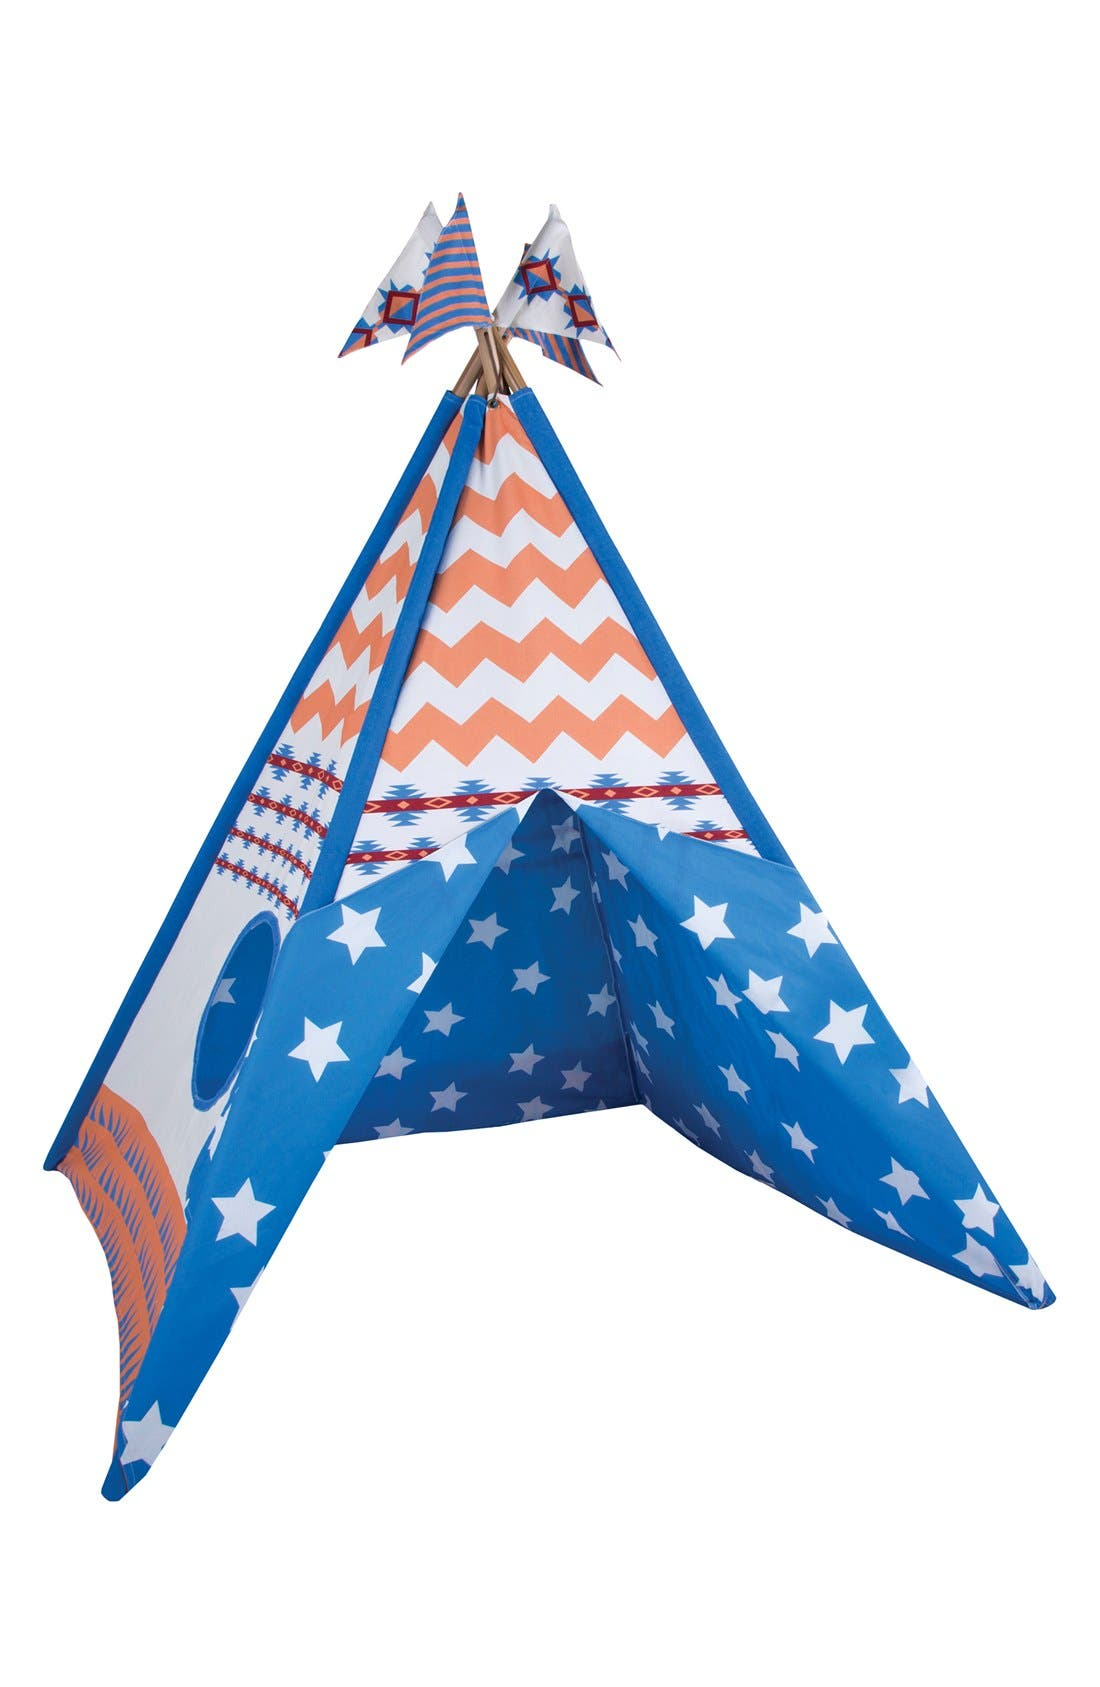 Pacific Play Tents 'Vintage' Cotton Canvas Teepee